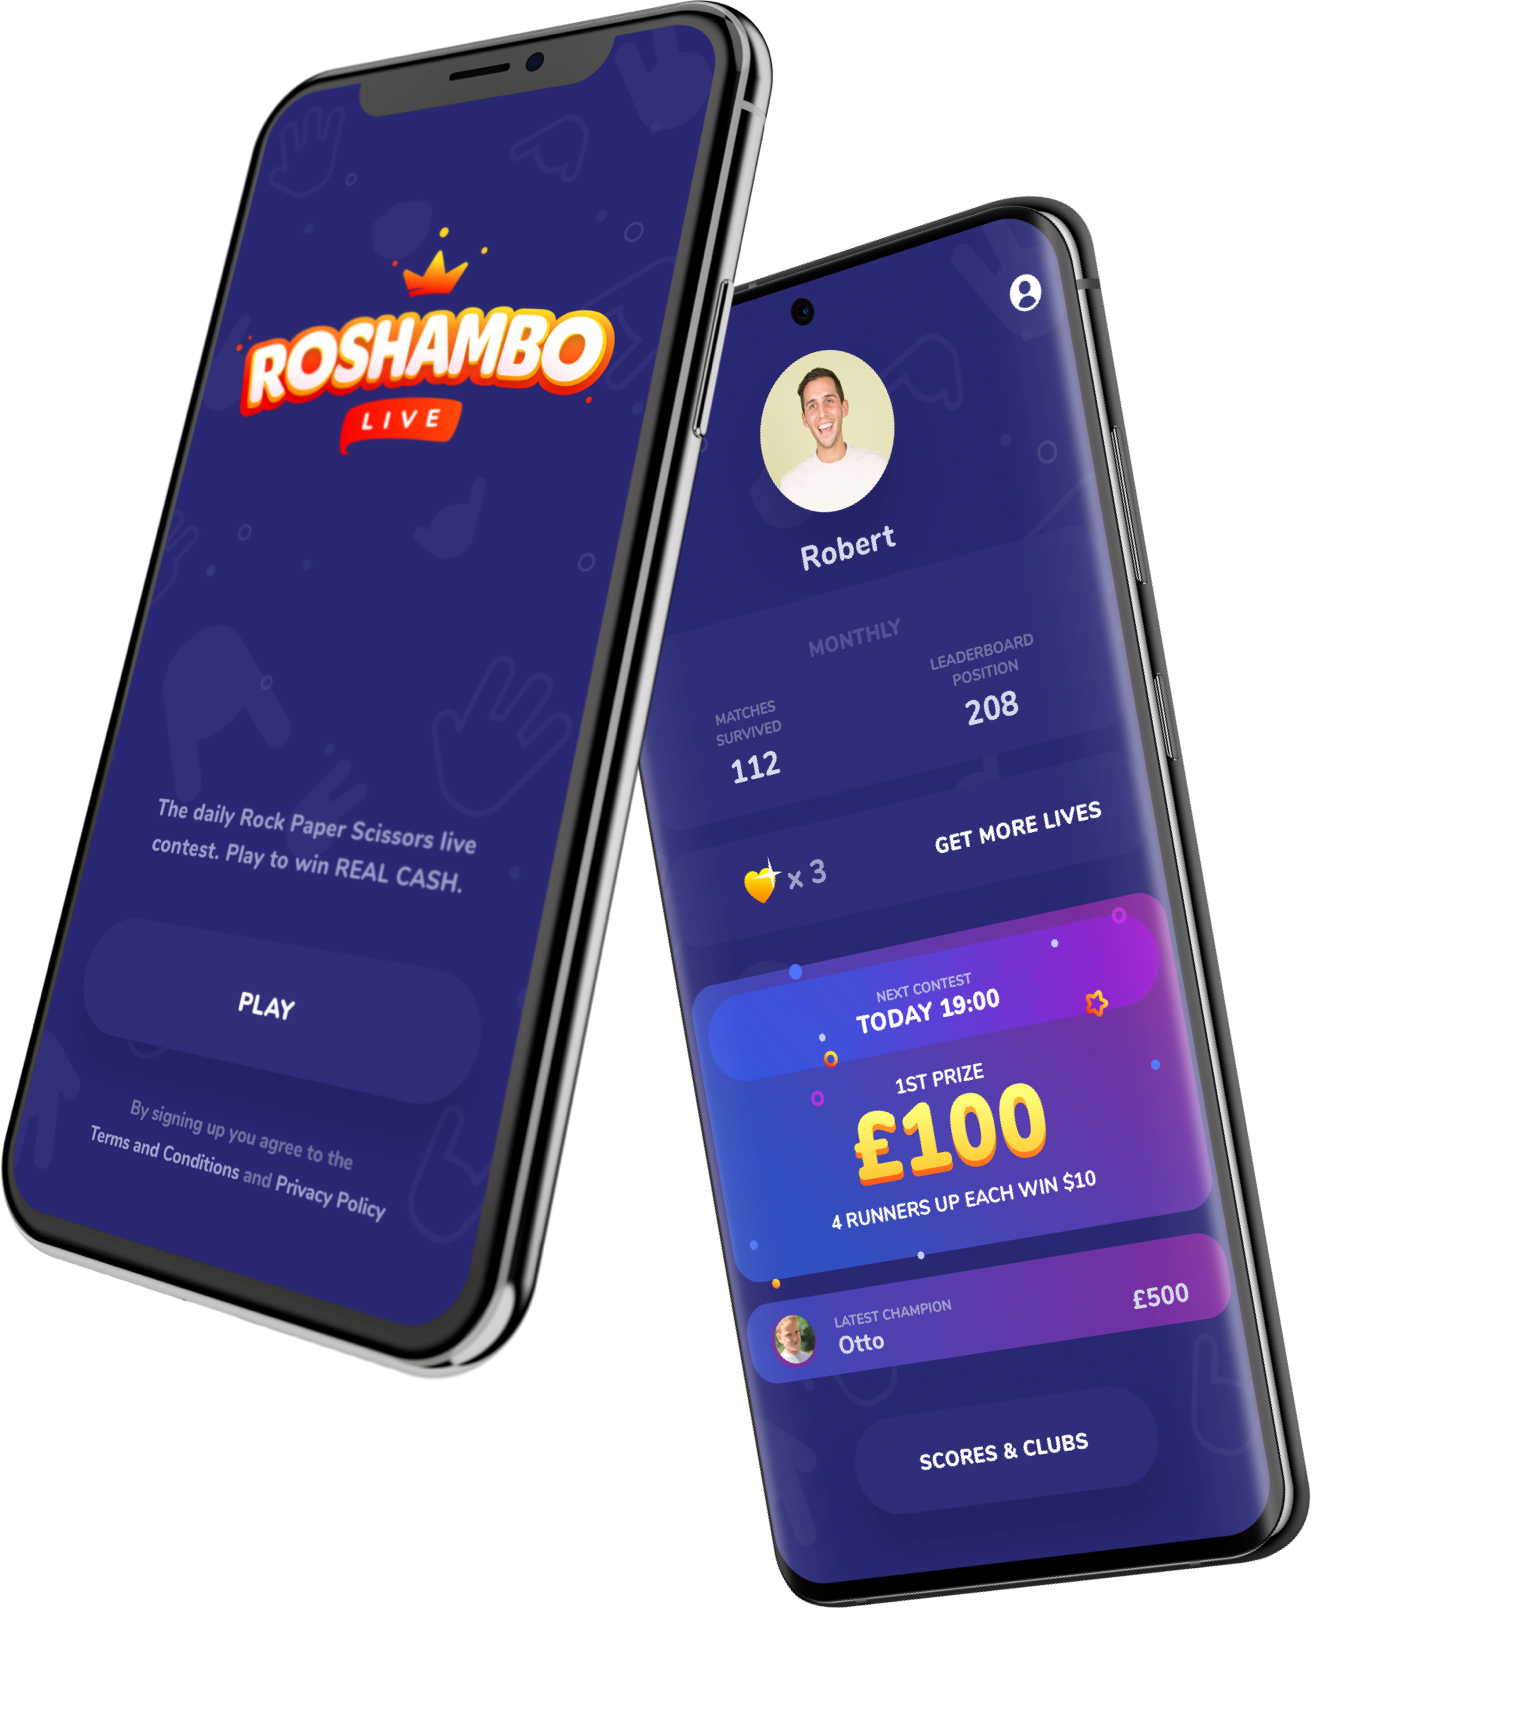 Roshambo - classic game of Rock Paper Scissors transformed into an epic national mobile contest.